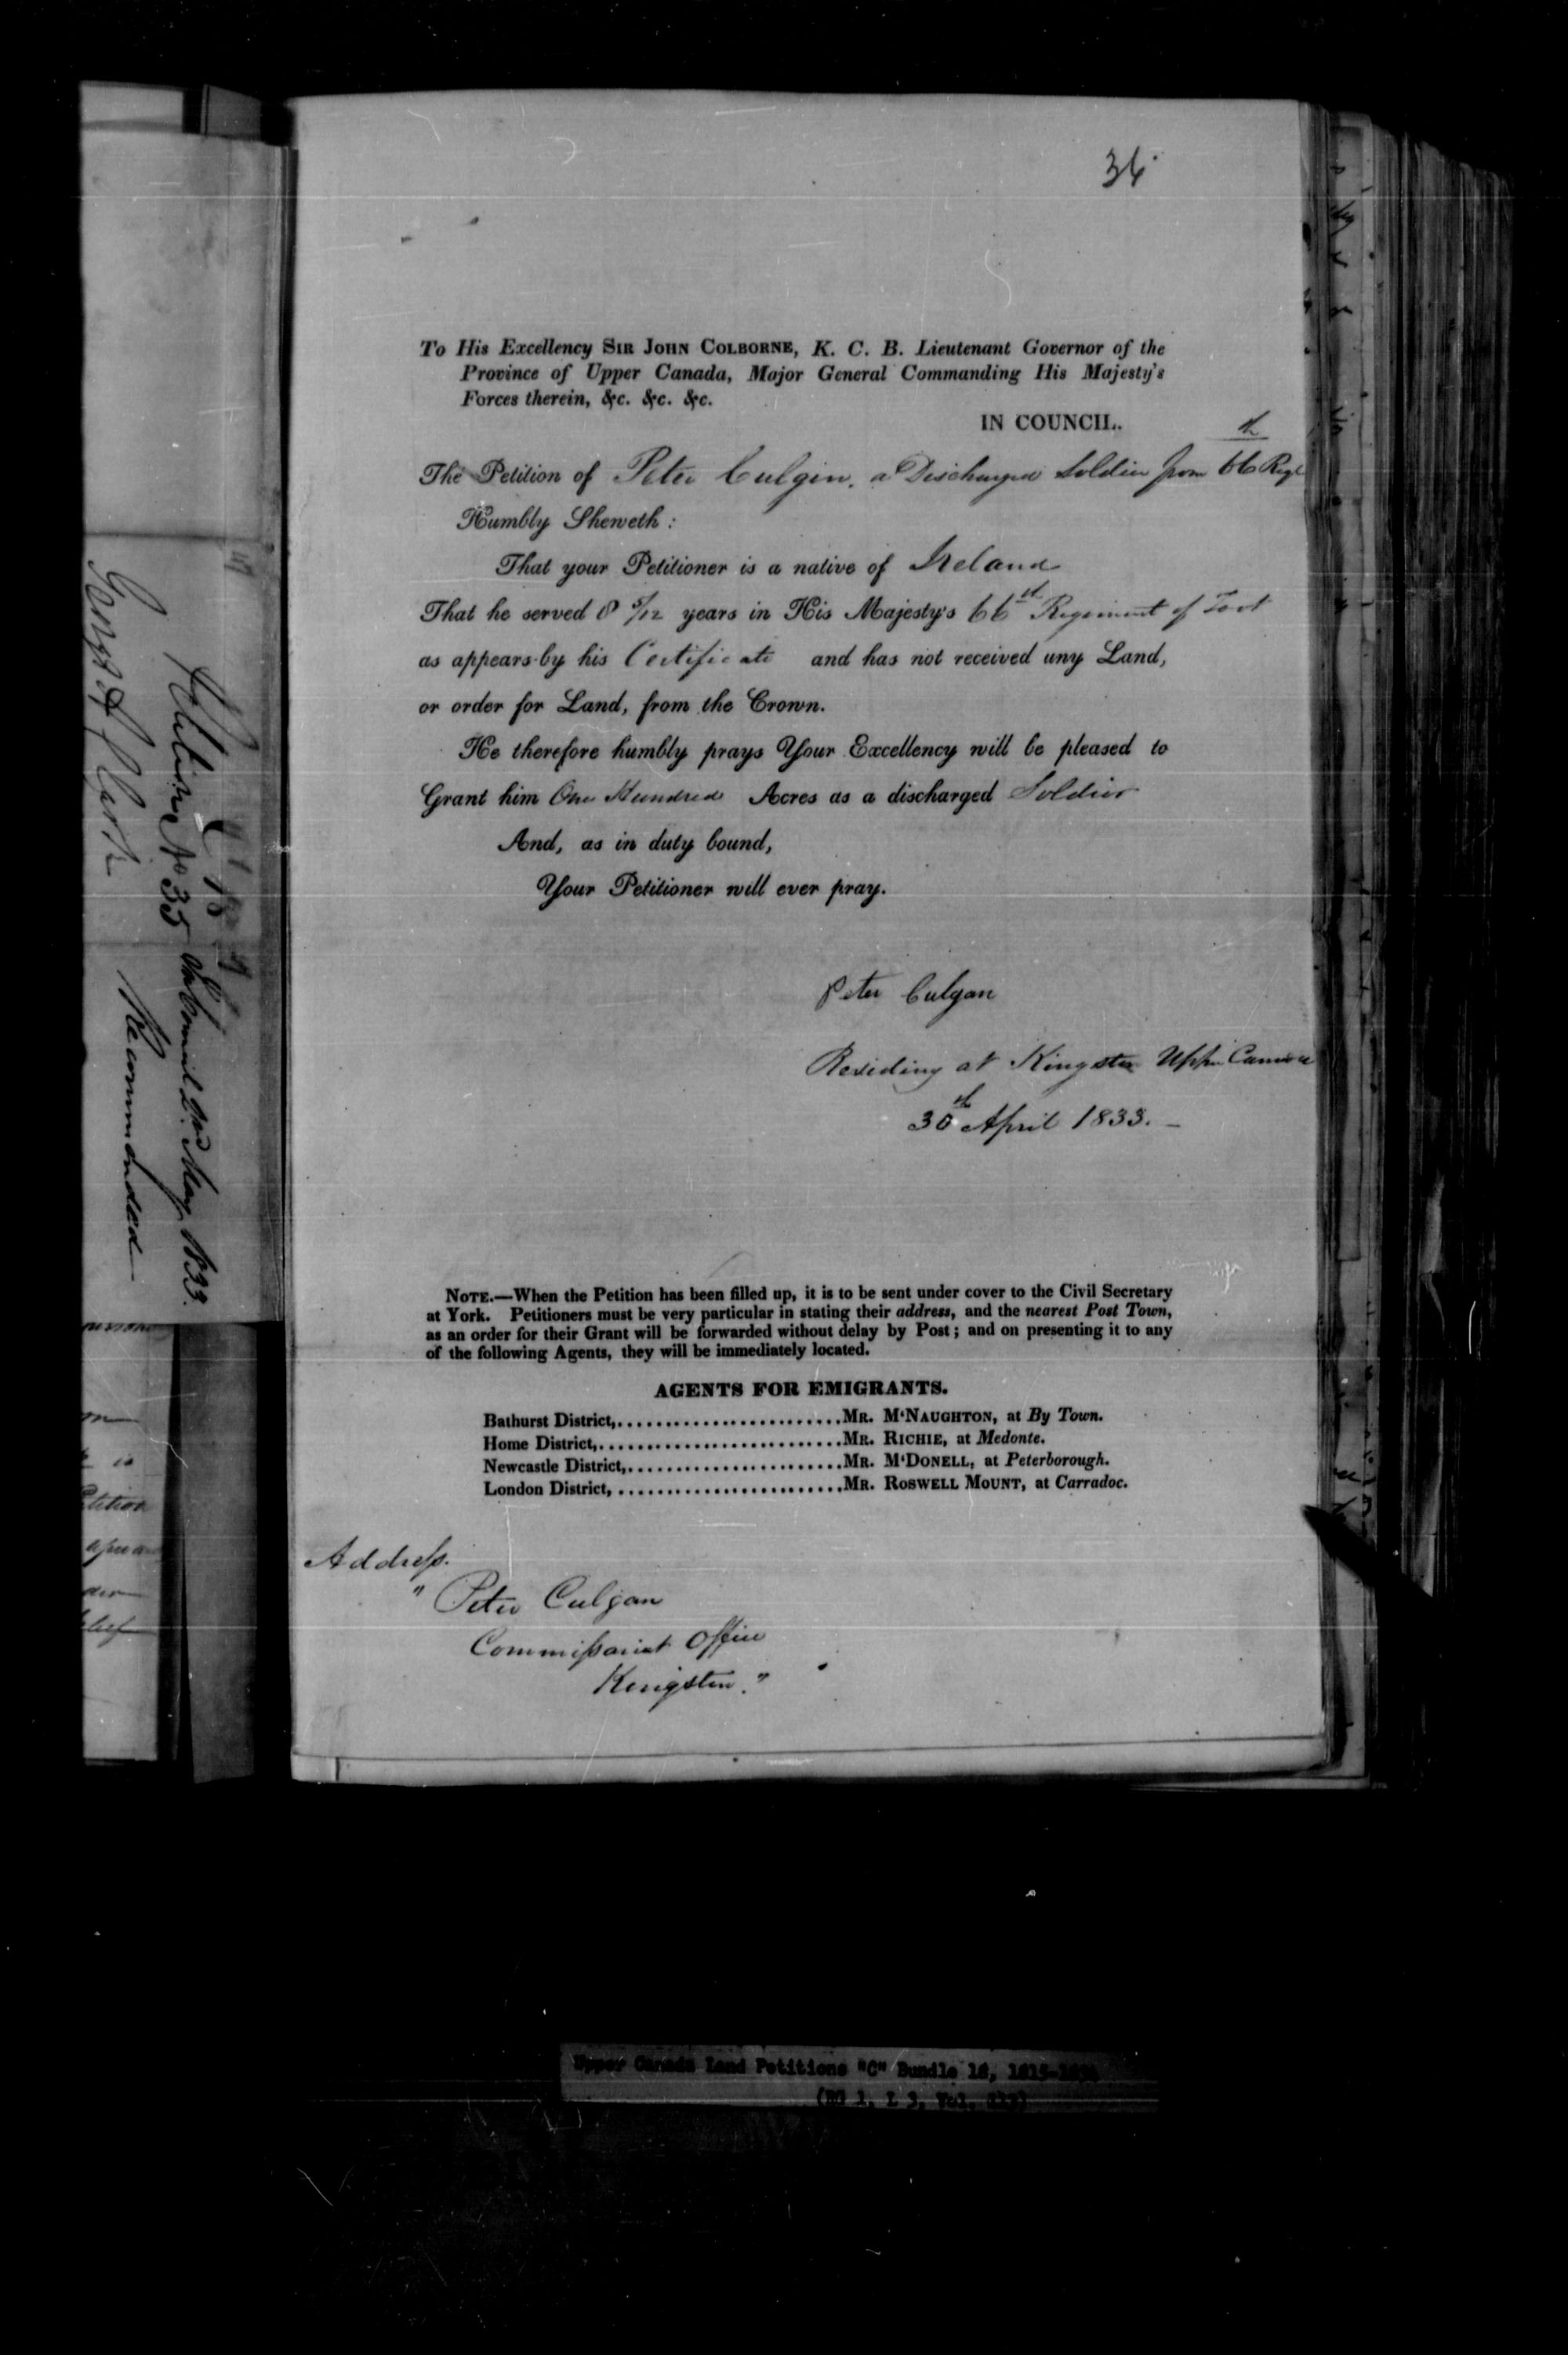 Title: Upper Canada Land Petitions (1763-1865) - Mikan Number: 205131 - Microform: c-1727